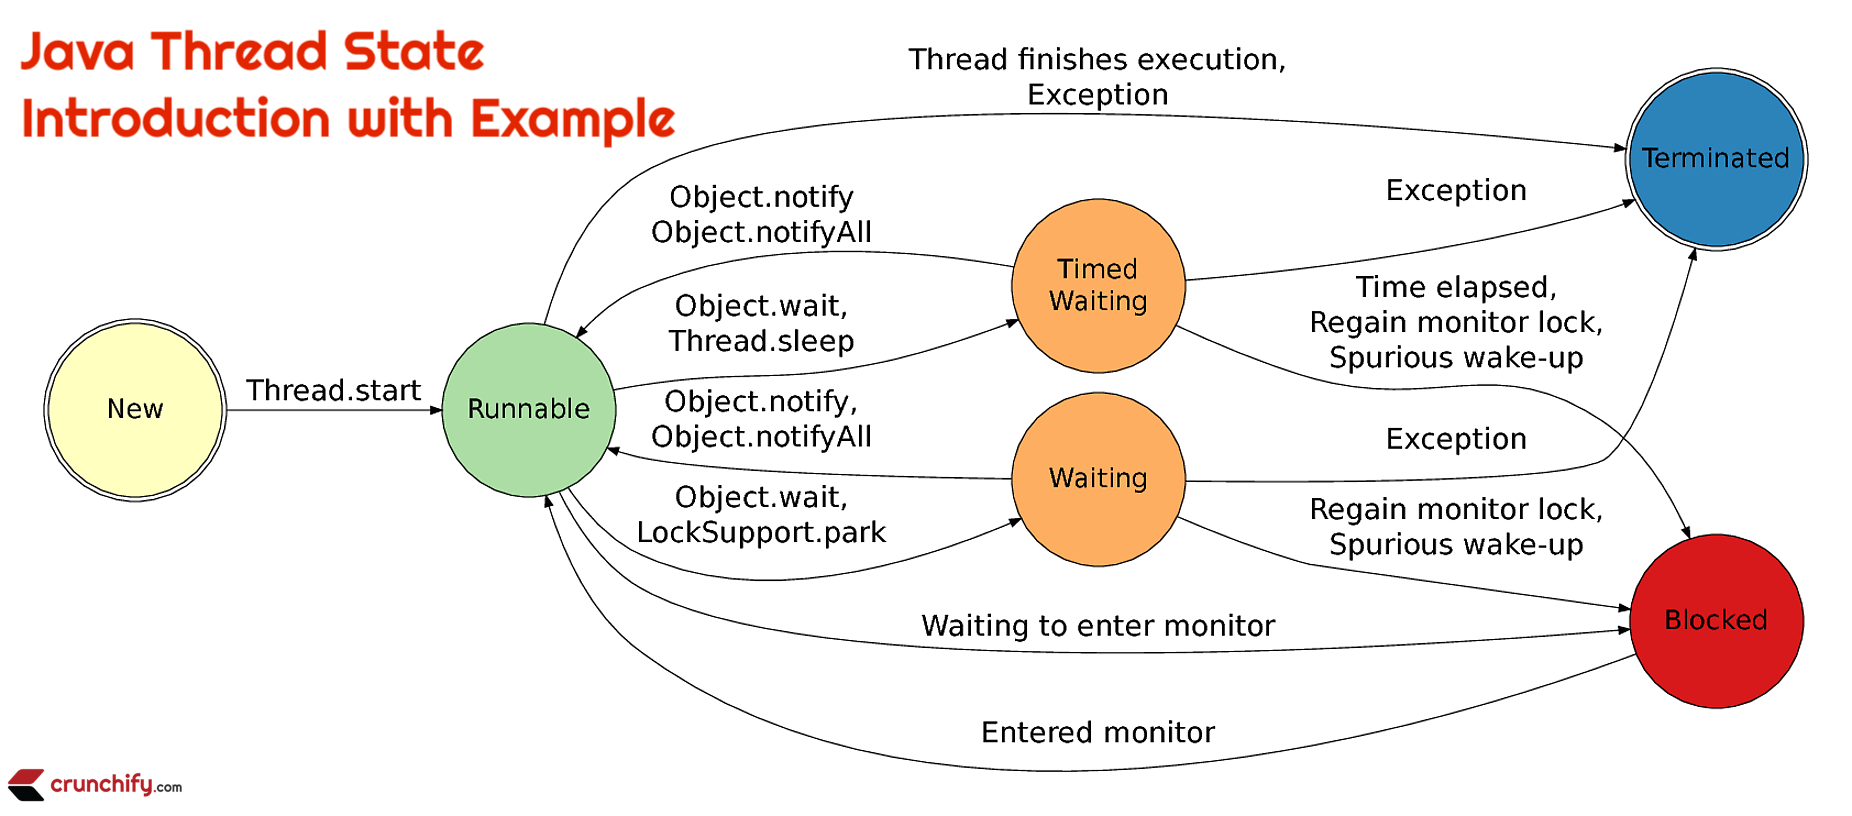 Java Thread State with Example